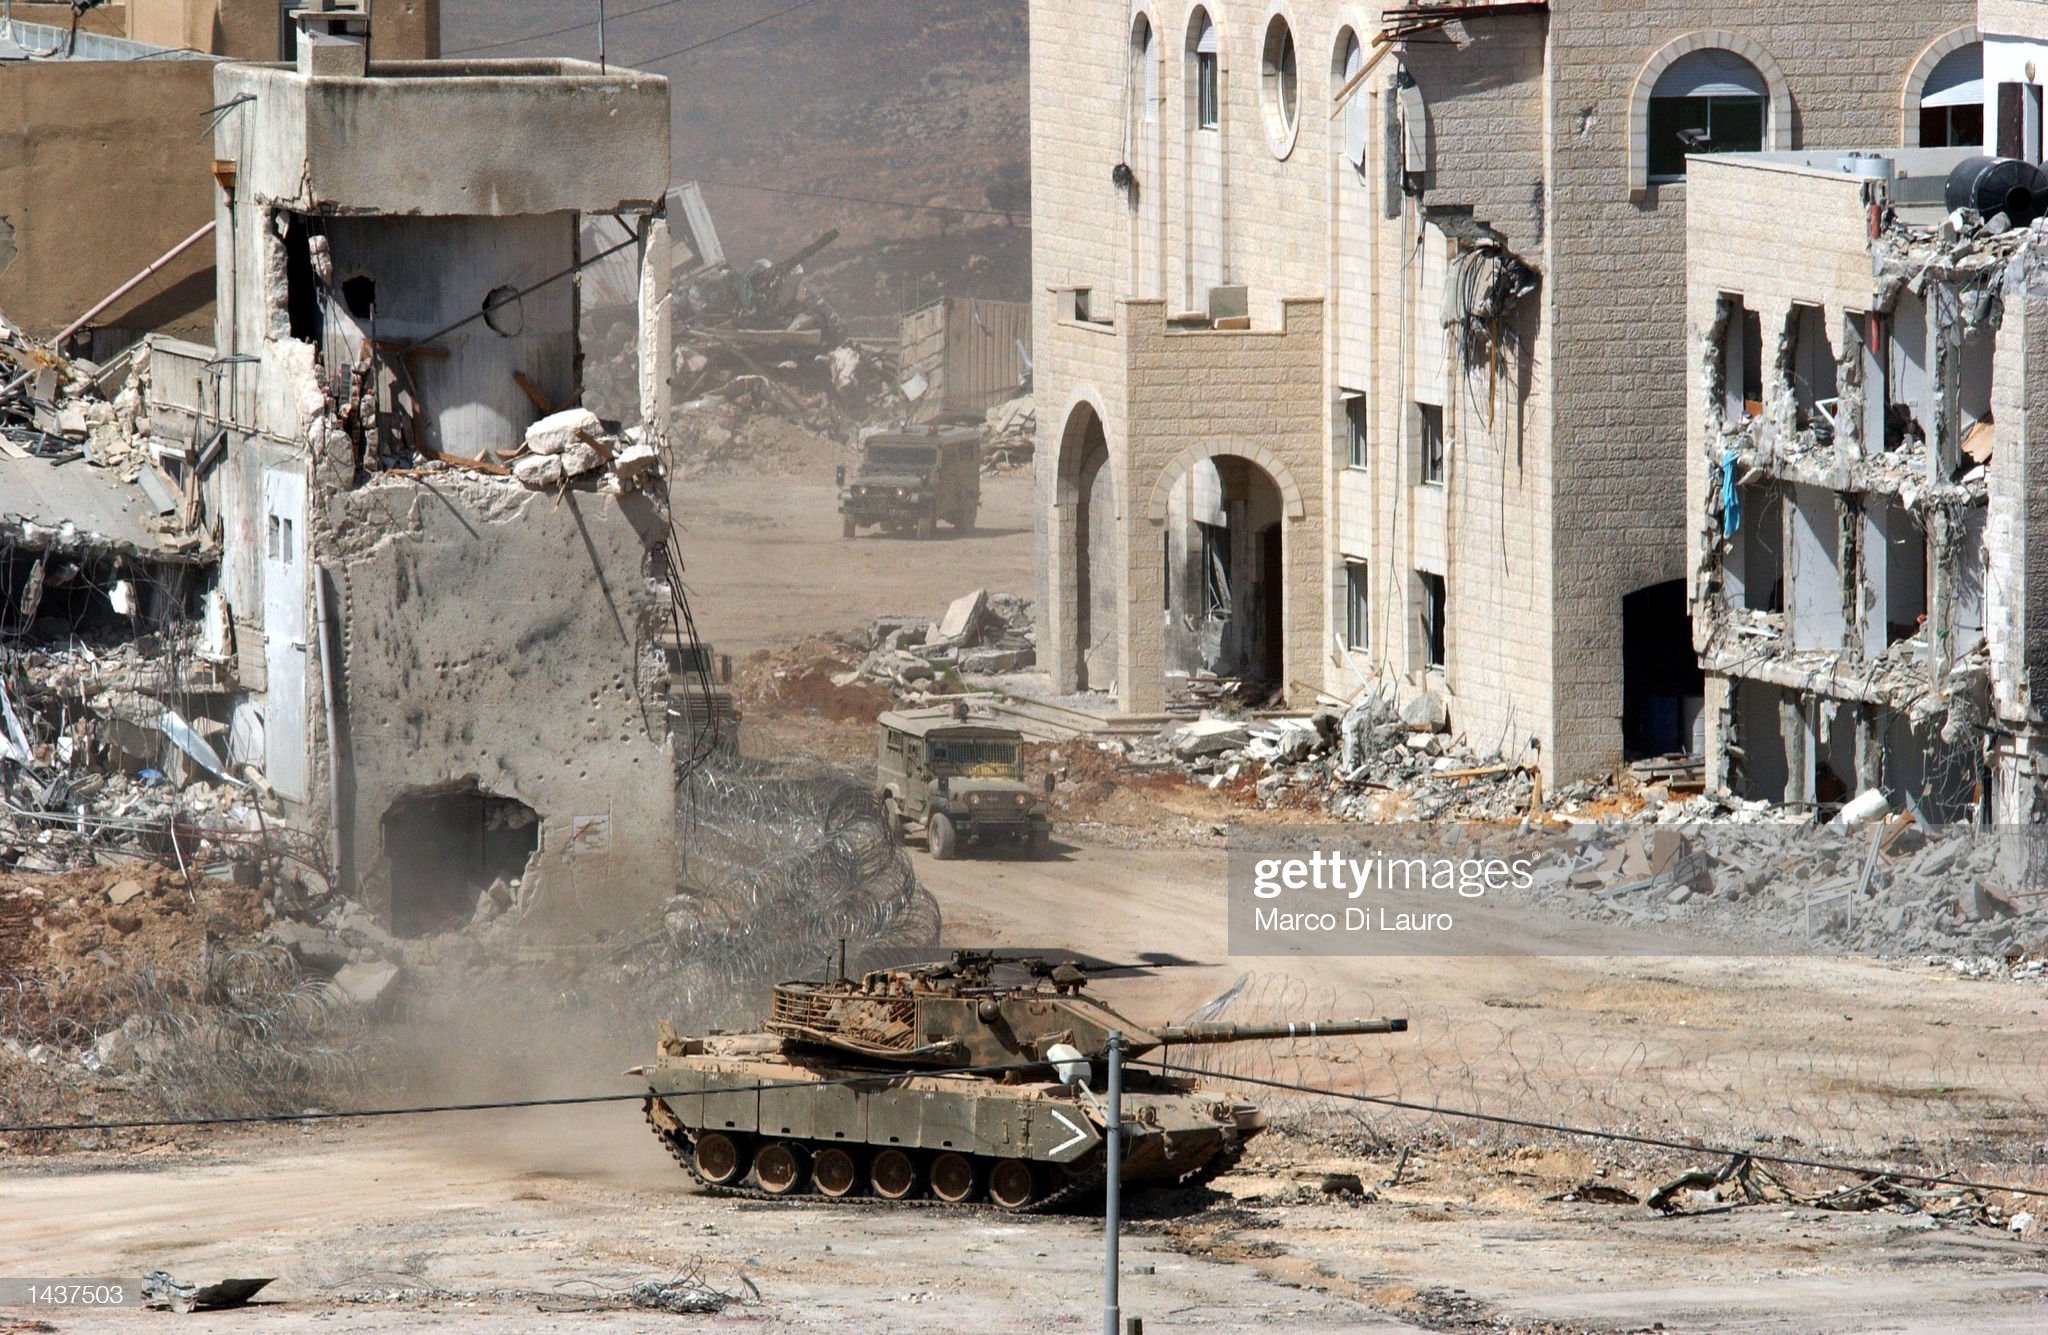 https://media.gettyimages.com/photos/an-israeli-tank-and-two-jeeps-drive-away-from-palestinian-leader-picture-id1437503?s=2048x2048